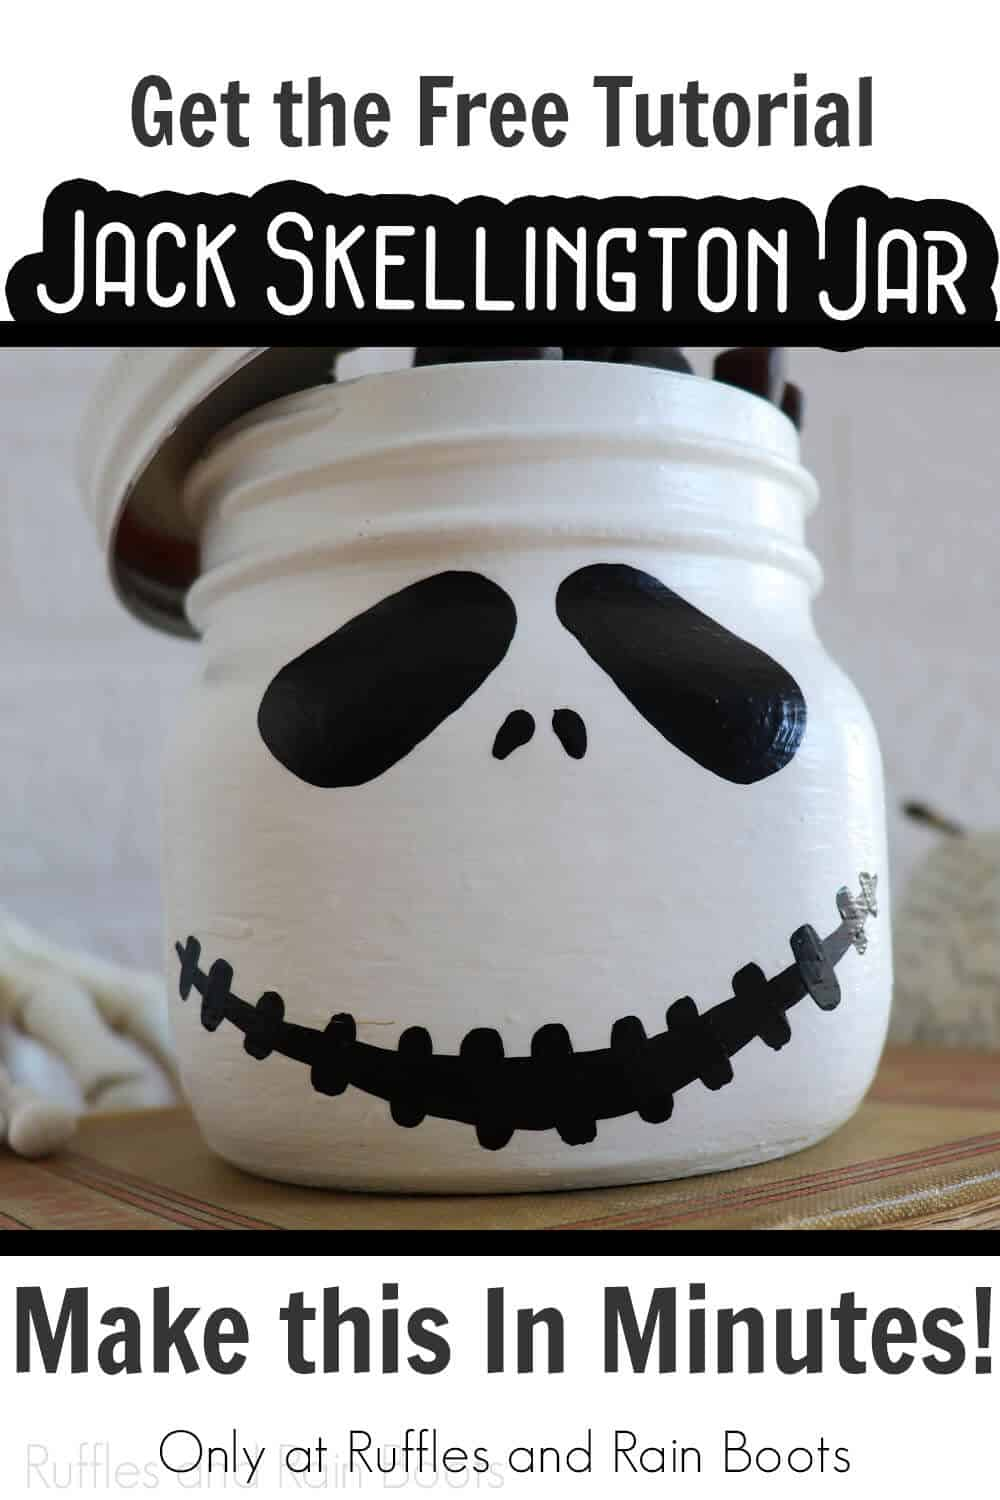 easy halloween craft for the nightmare before christmas with text which reads get the free tutorial jack skellington jar make this in minutes!